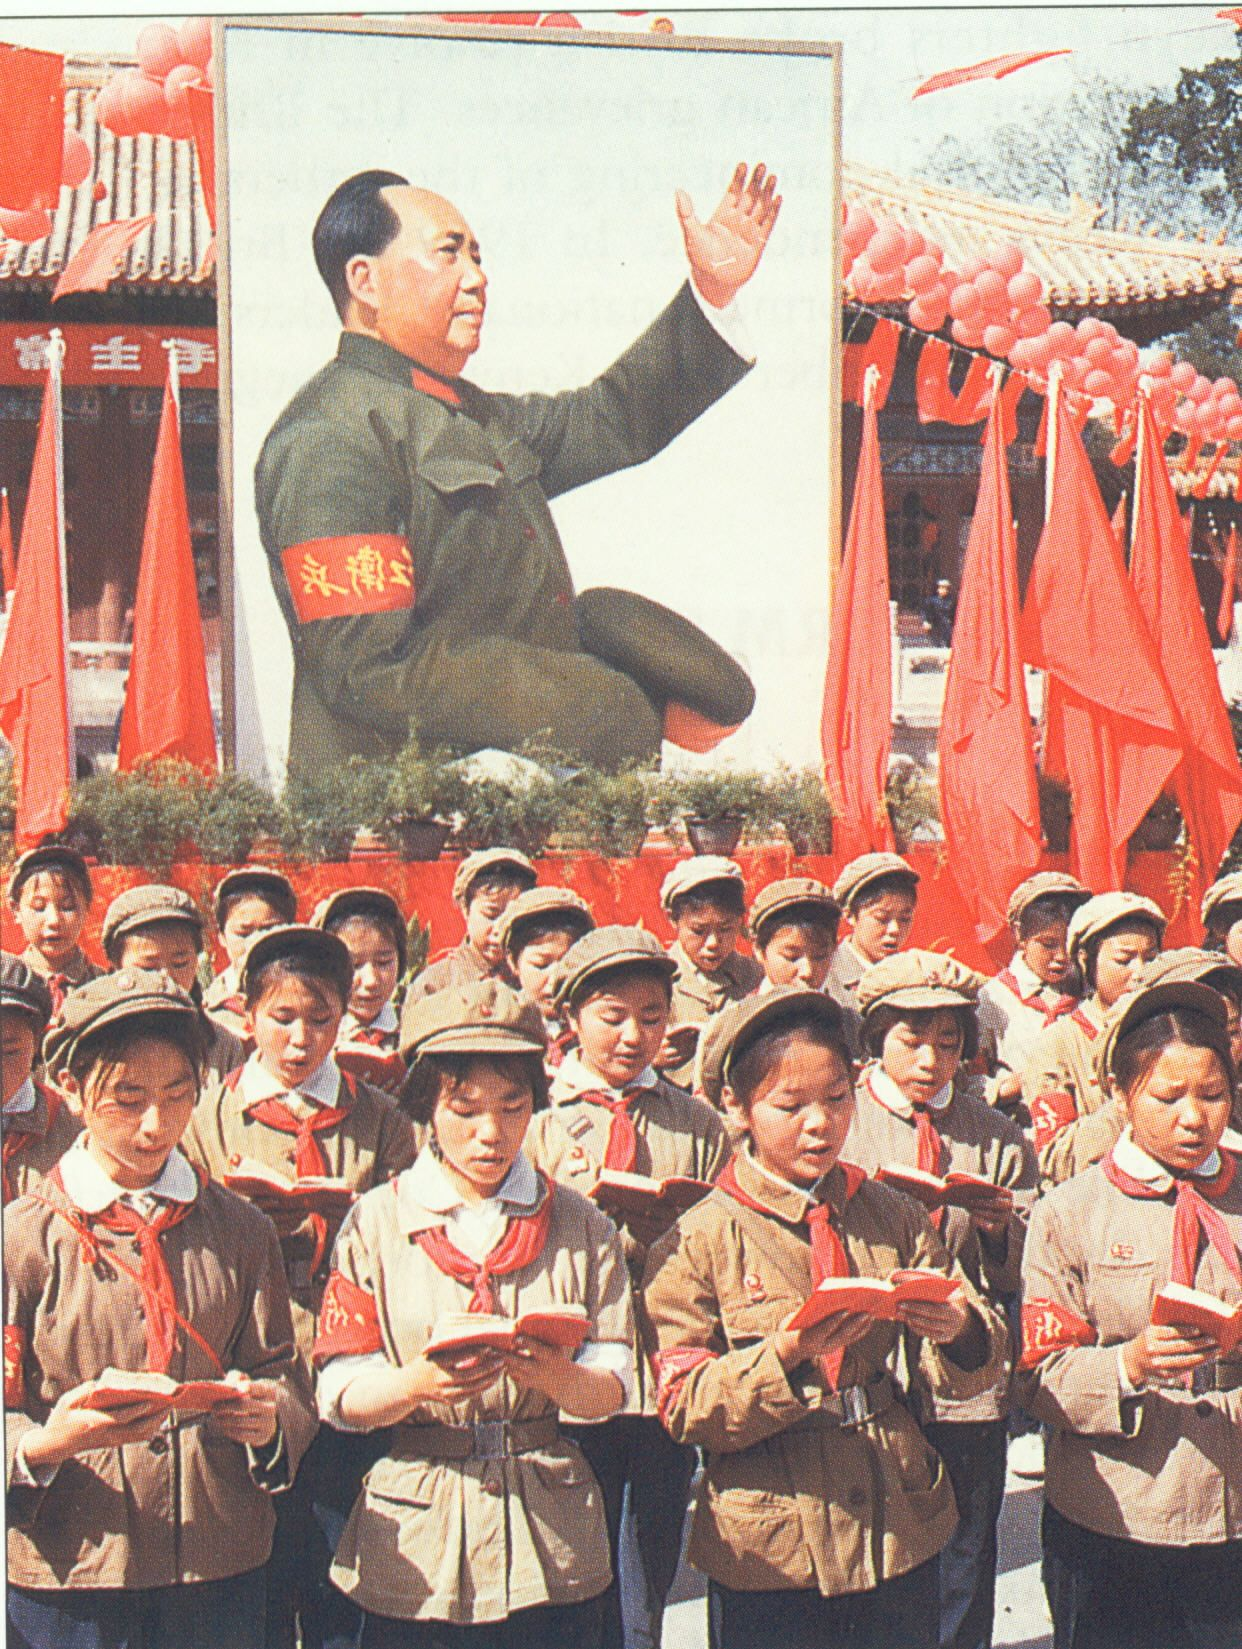 the chinese cultural revolution A poster depicting mao and chinese laborers and promoting the cultural revolution china is a country located in the eastern region of asia, and is the most populous country in the world with a current population of around 1381 billion people.